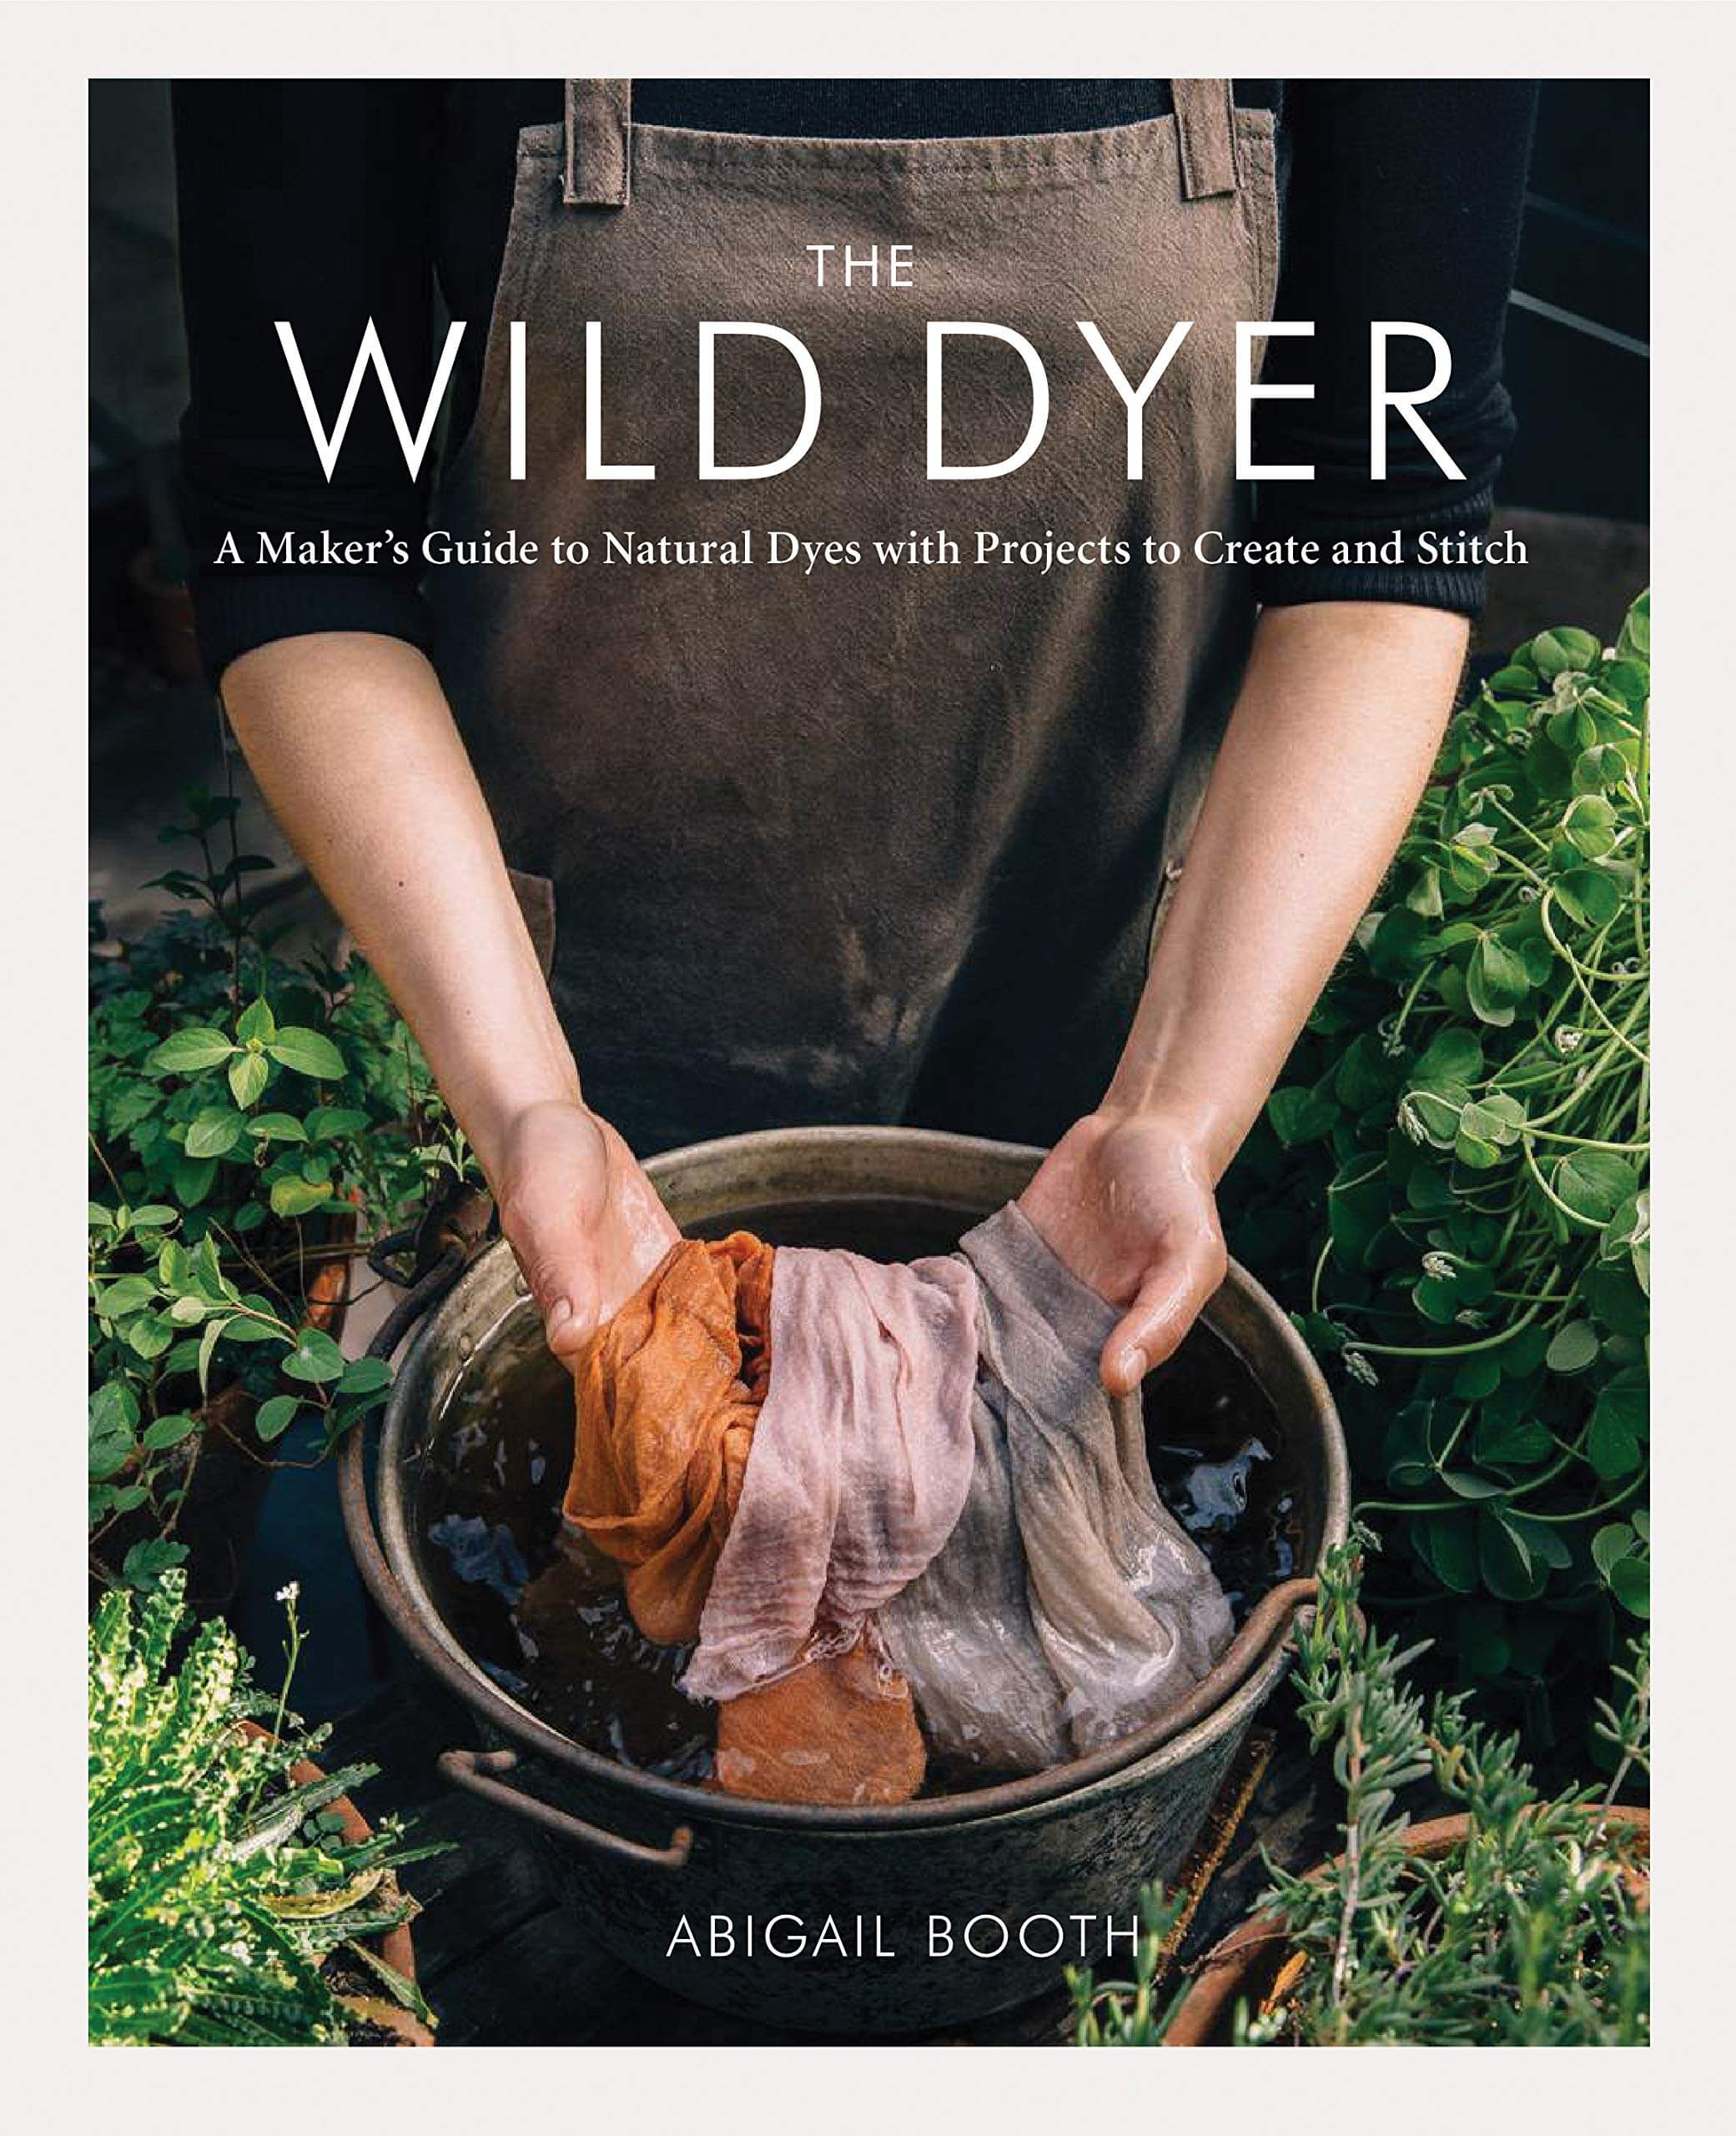 The Wild Dyer book cover image